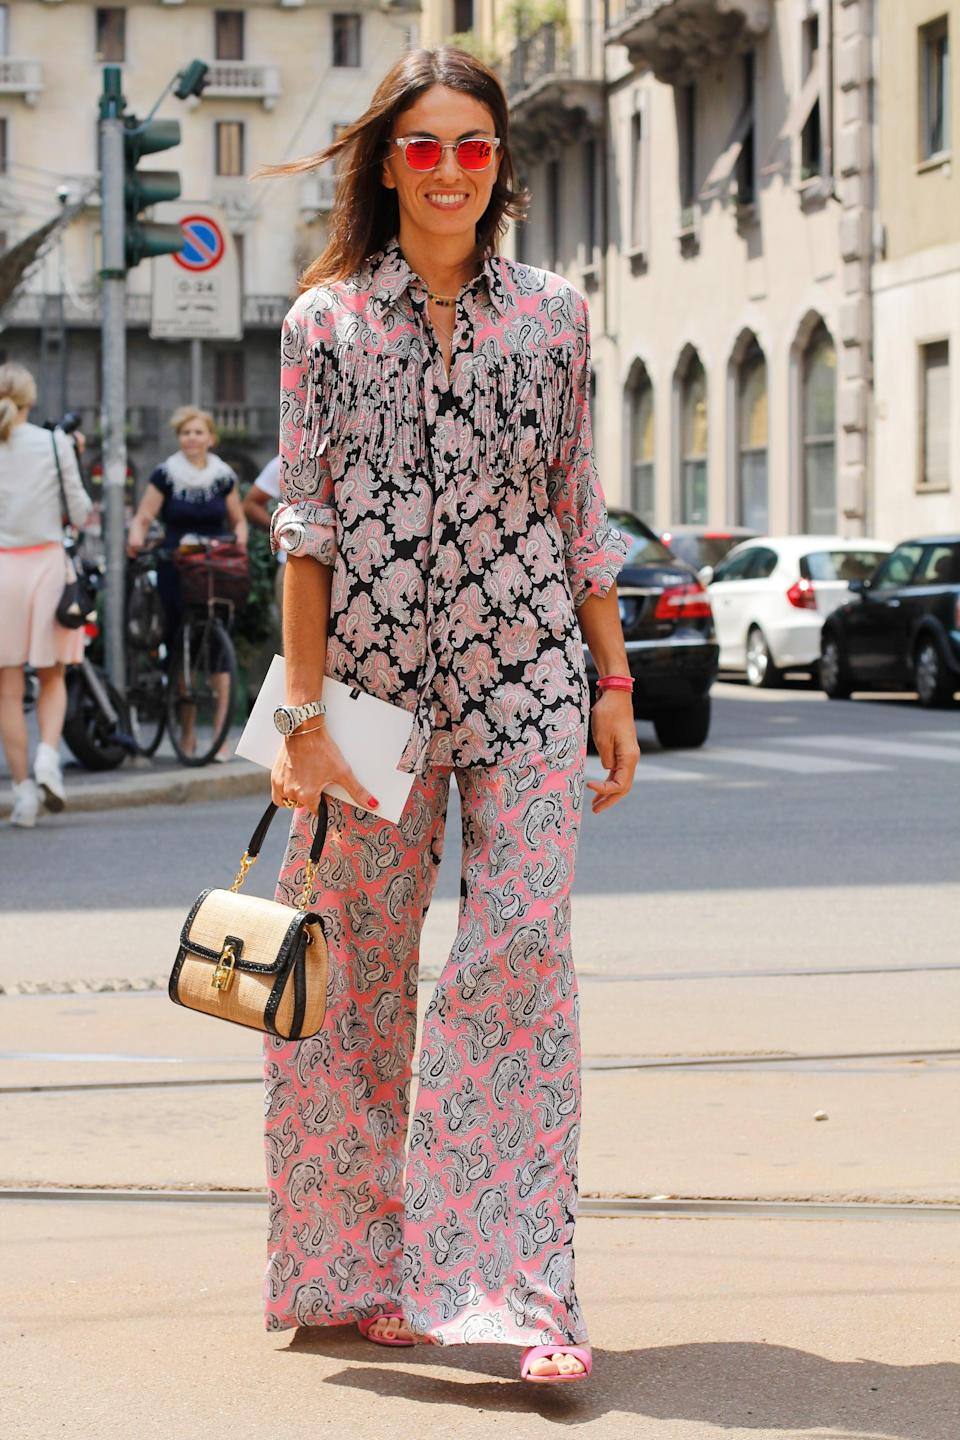 <p>This potent, printed look has serious style prowess, thanks to a pretty palette and an easy, breezy fit.</p>